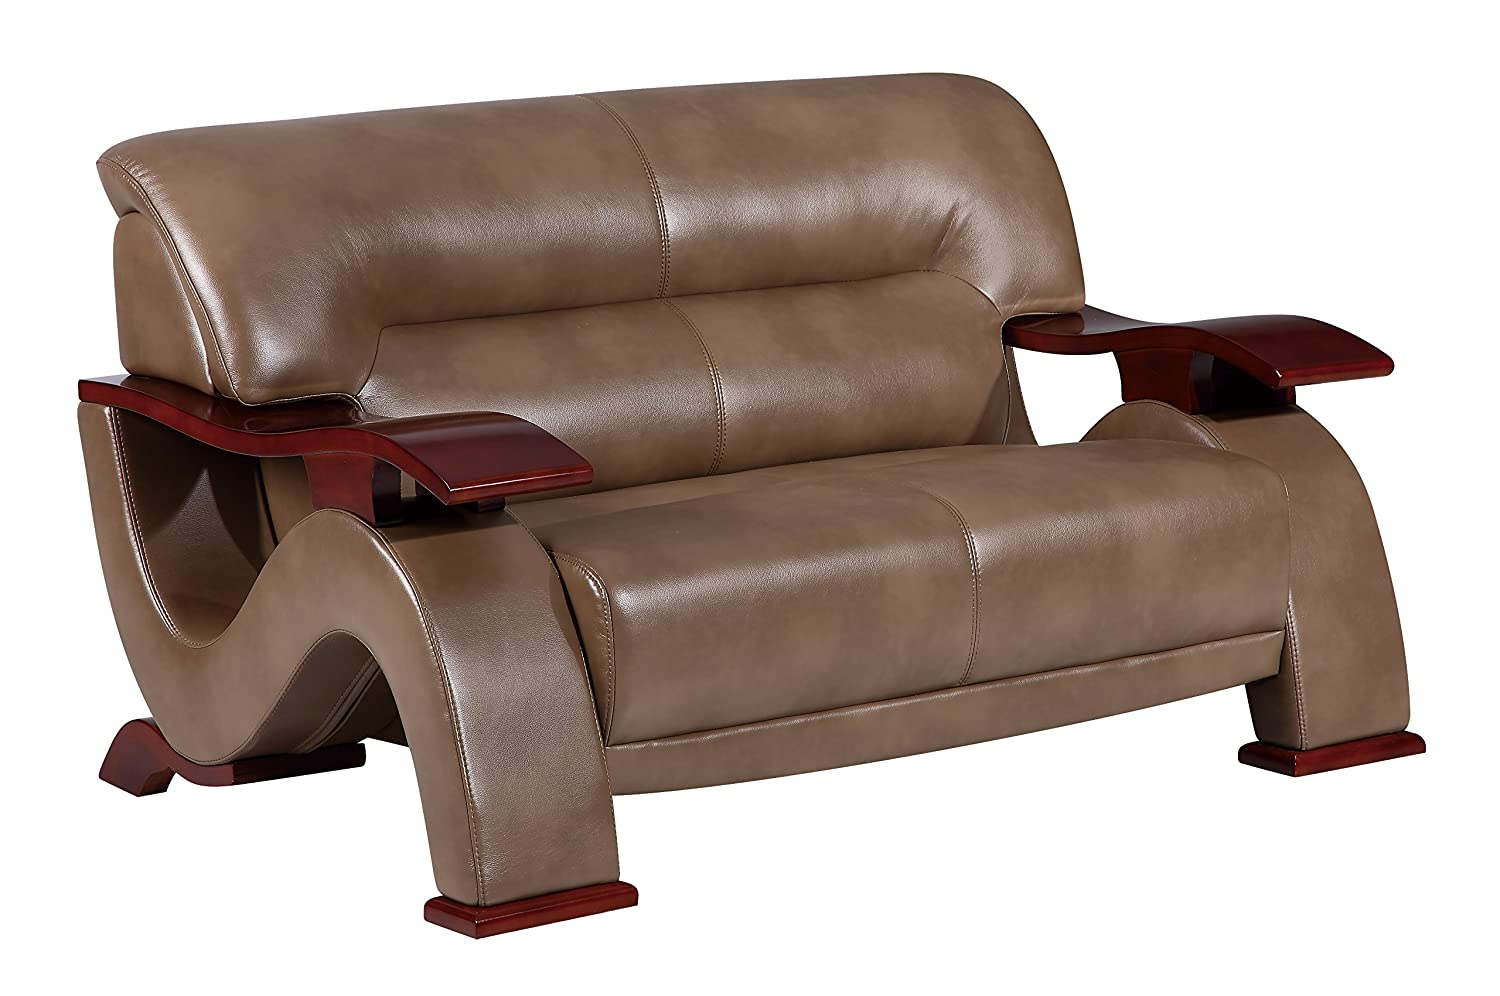 Global Furniture U2033 - DTP672P - L Pluto Loveseat - Walnut